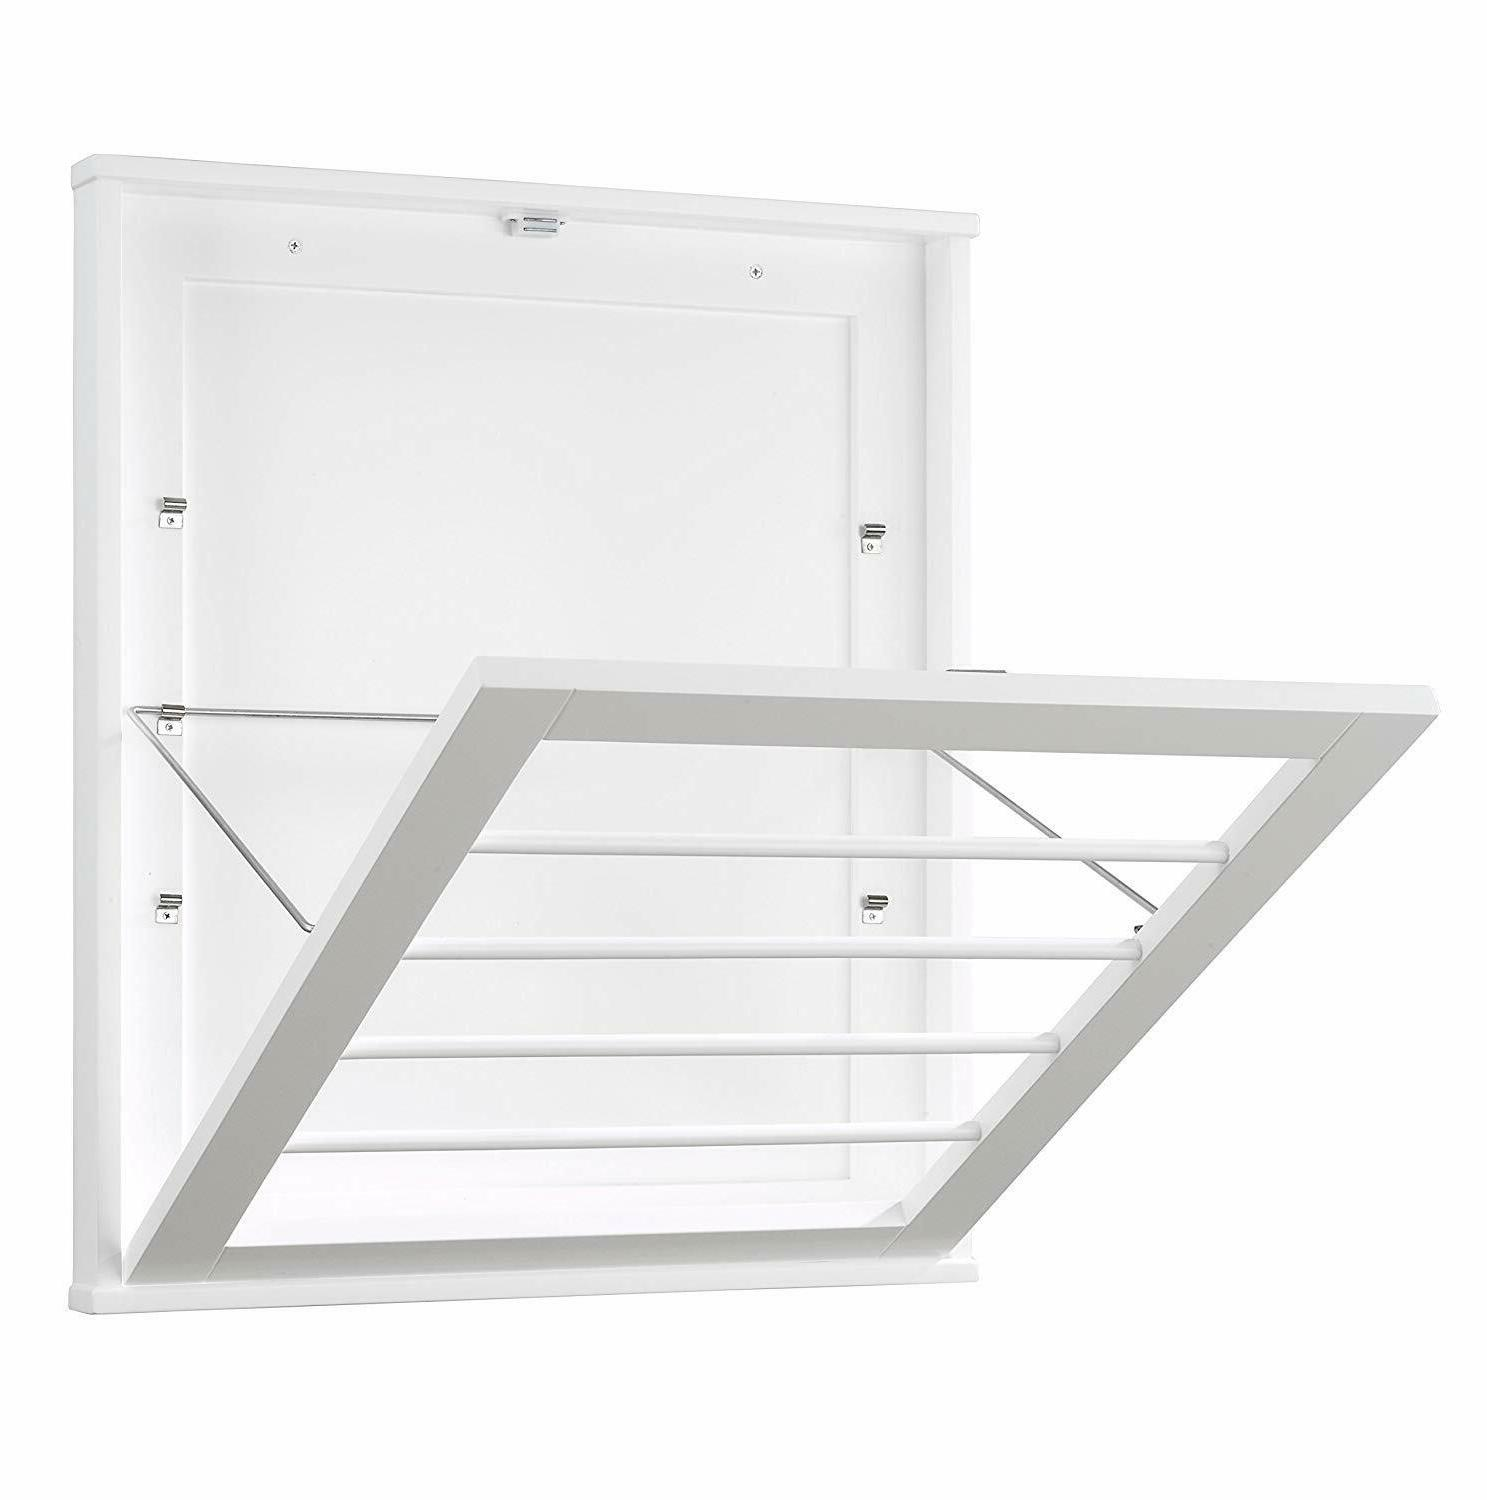 Wall Mount Drying Space Laundry